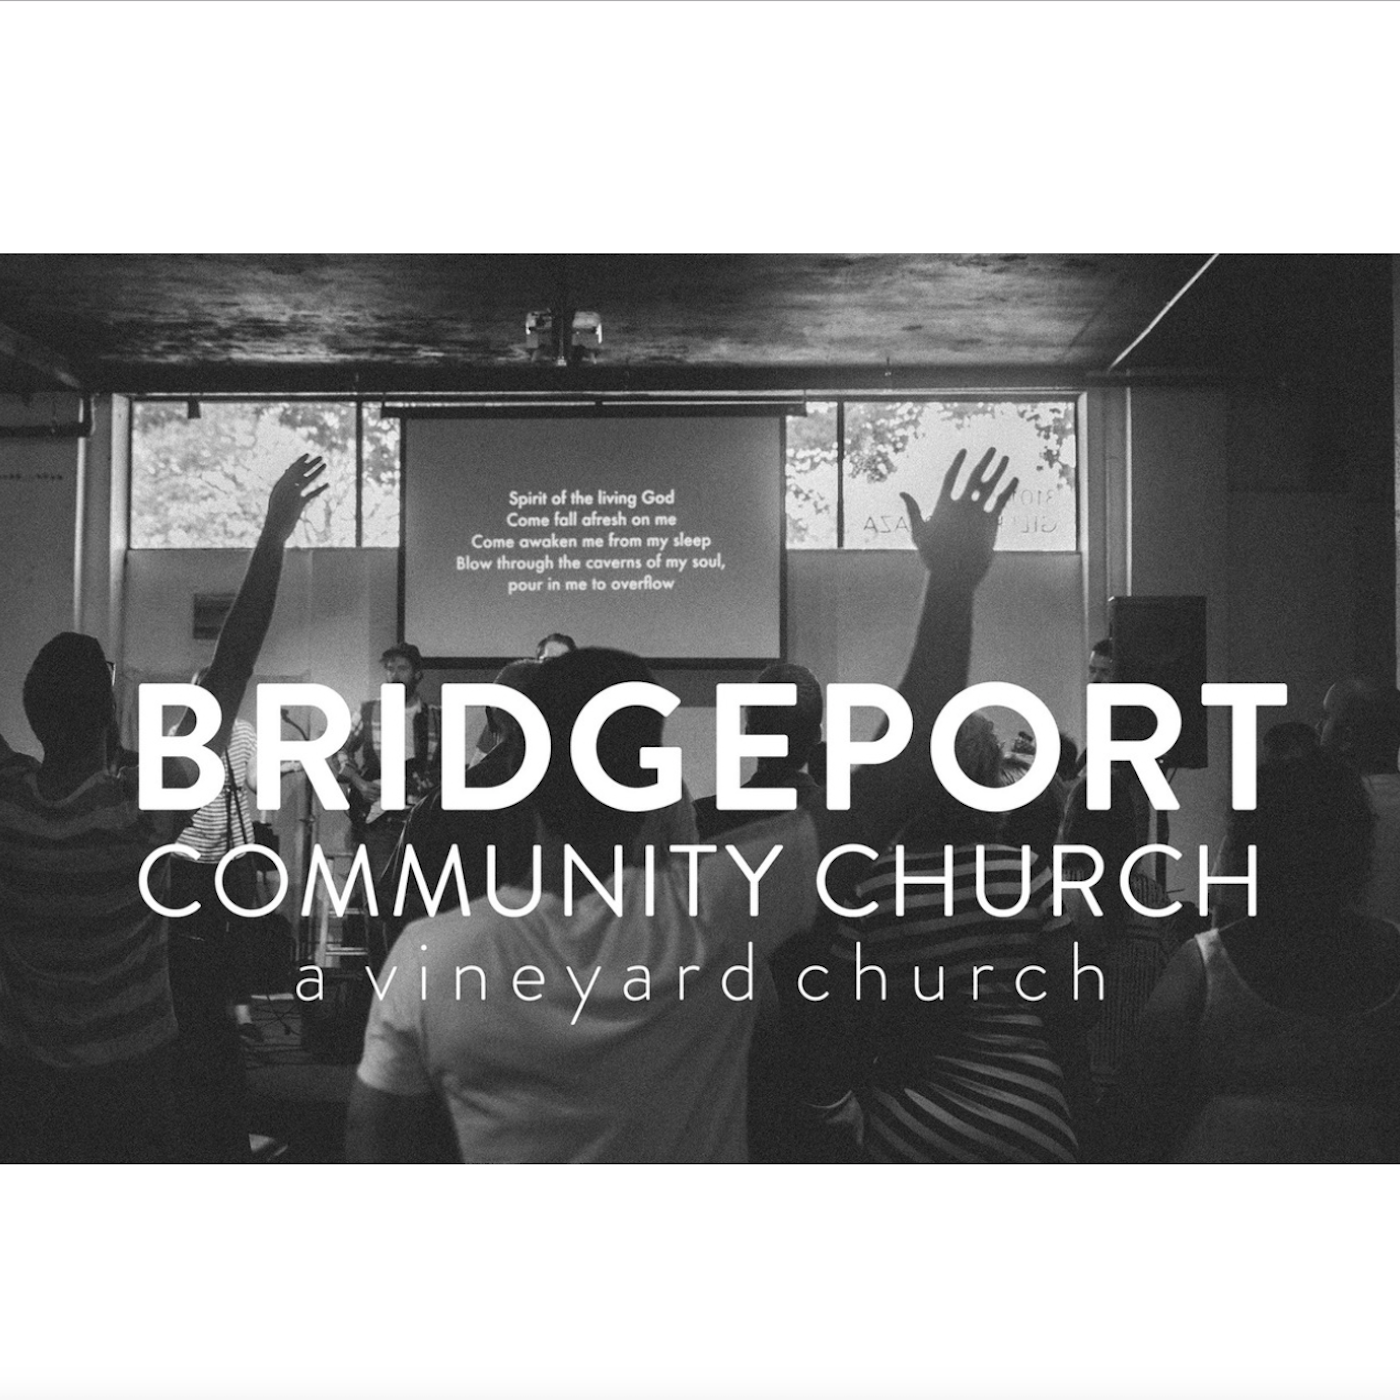 BRIDGEPORT COMMUNITY CHURCH Sermons